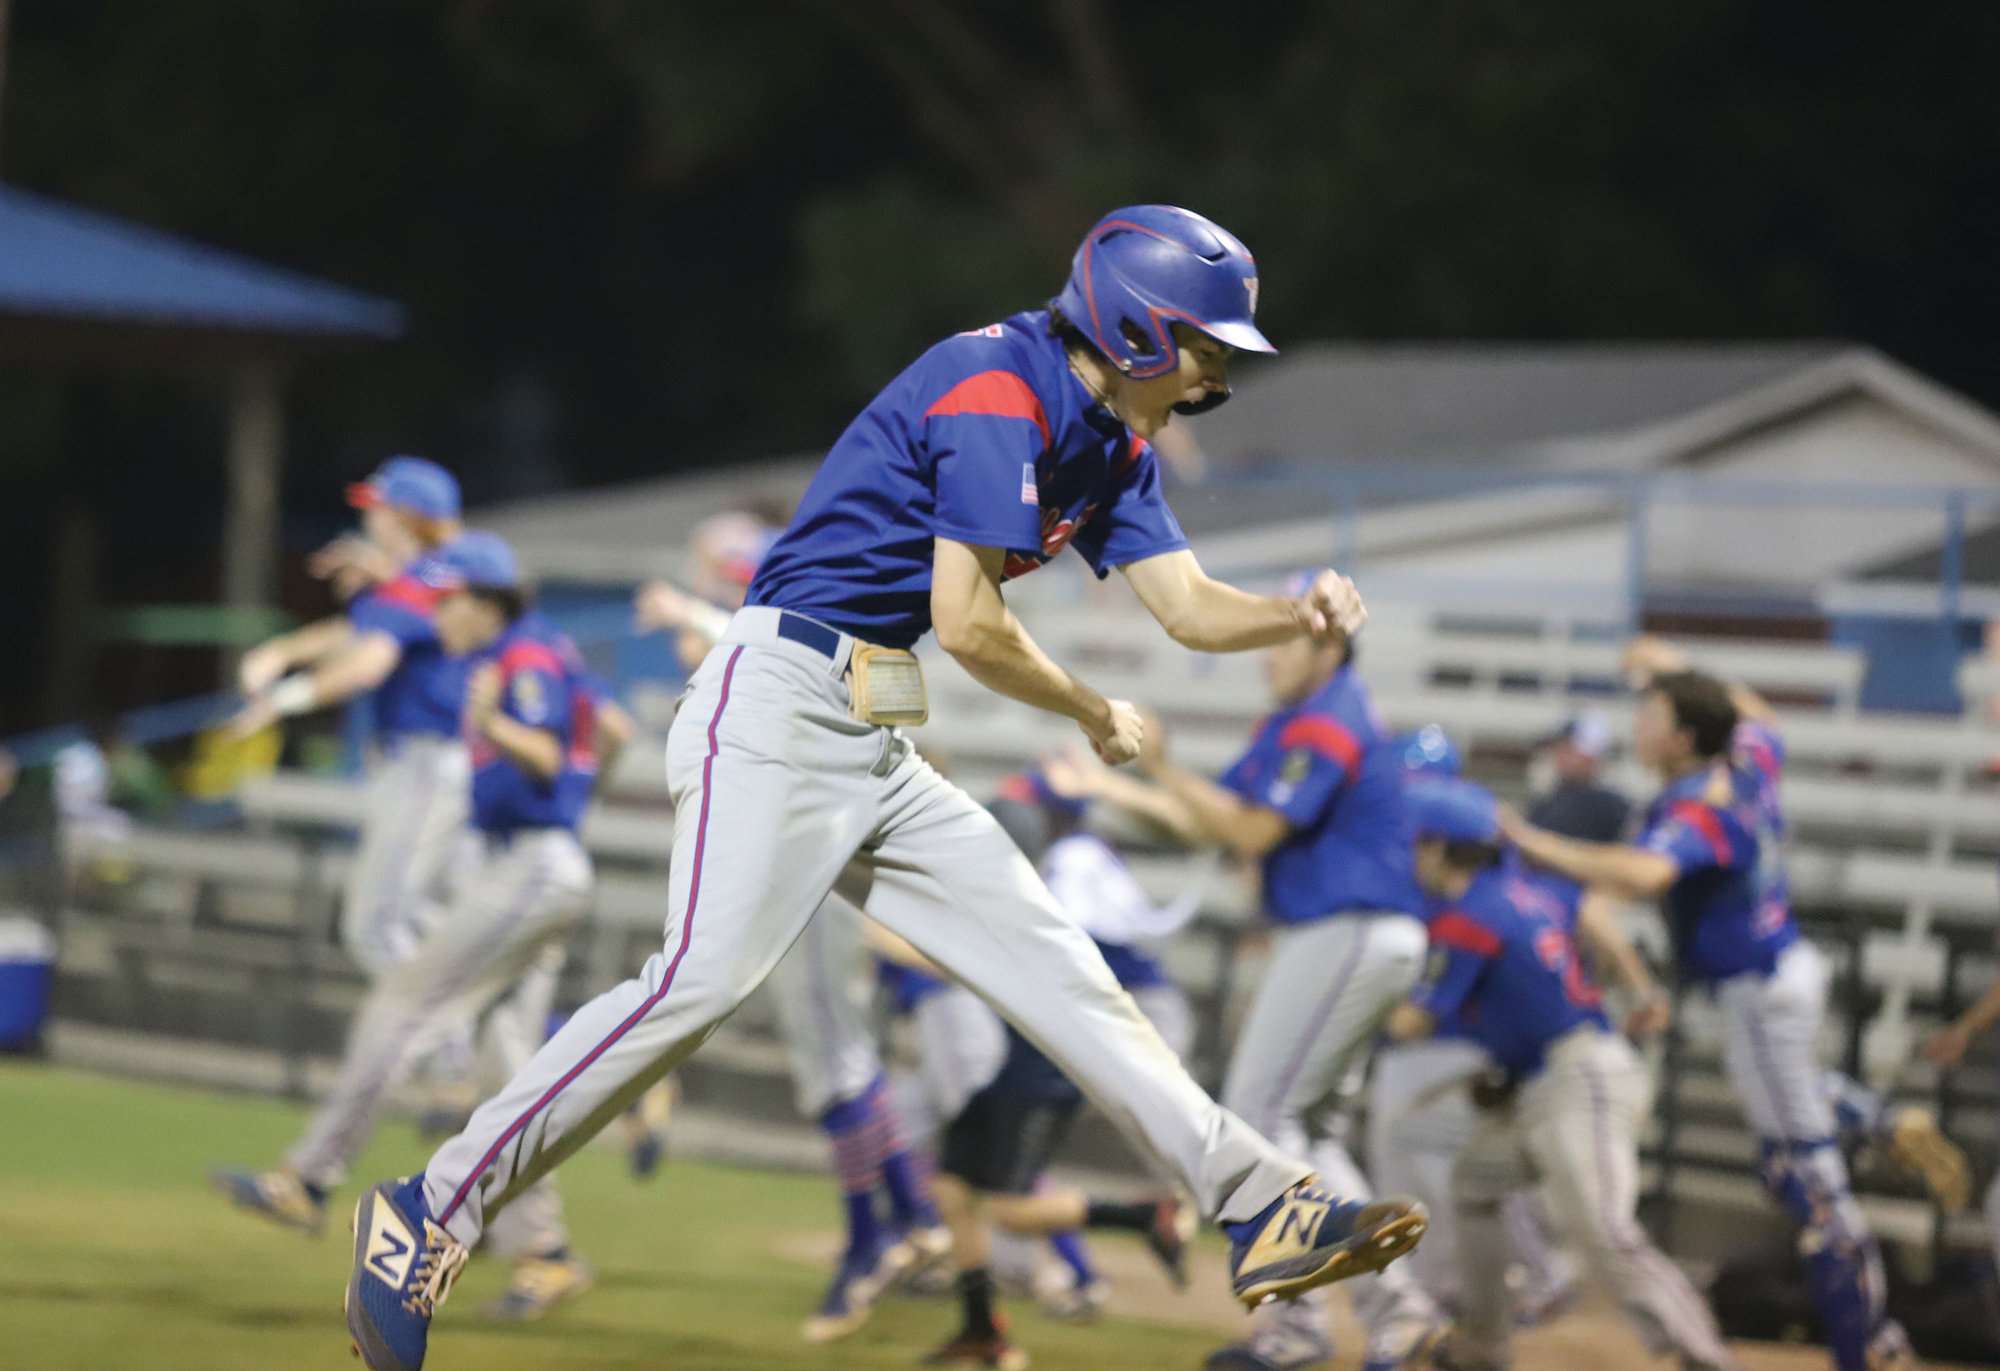 J. SCOTT SEWELL / The Sumter Item  Sumter's Jackson Hoshour leaps into the air in celebration after scoring the winning run in the P-15's 4-3 victory over Goose Creek Post 166 on Wednesday at Riley Park. The win gave Sumter a 2-0 lead in the best-of-5 third-round American Legion state playoffs series.